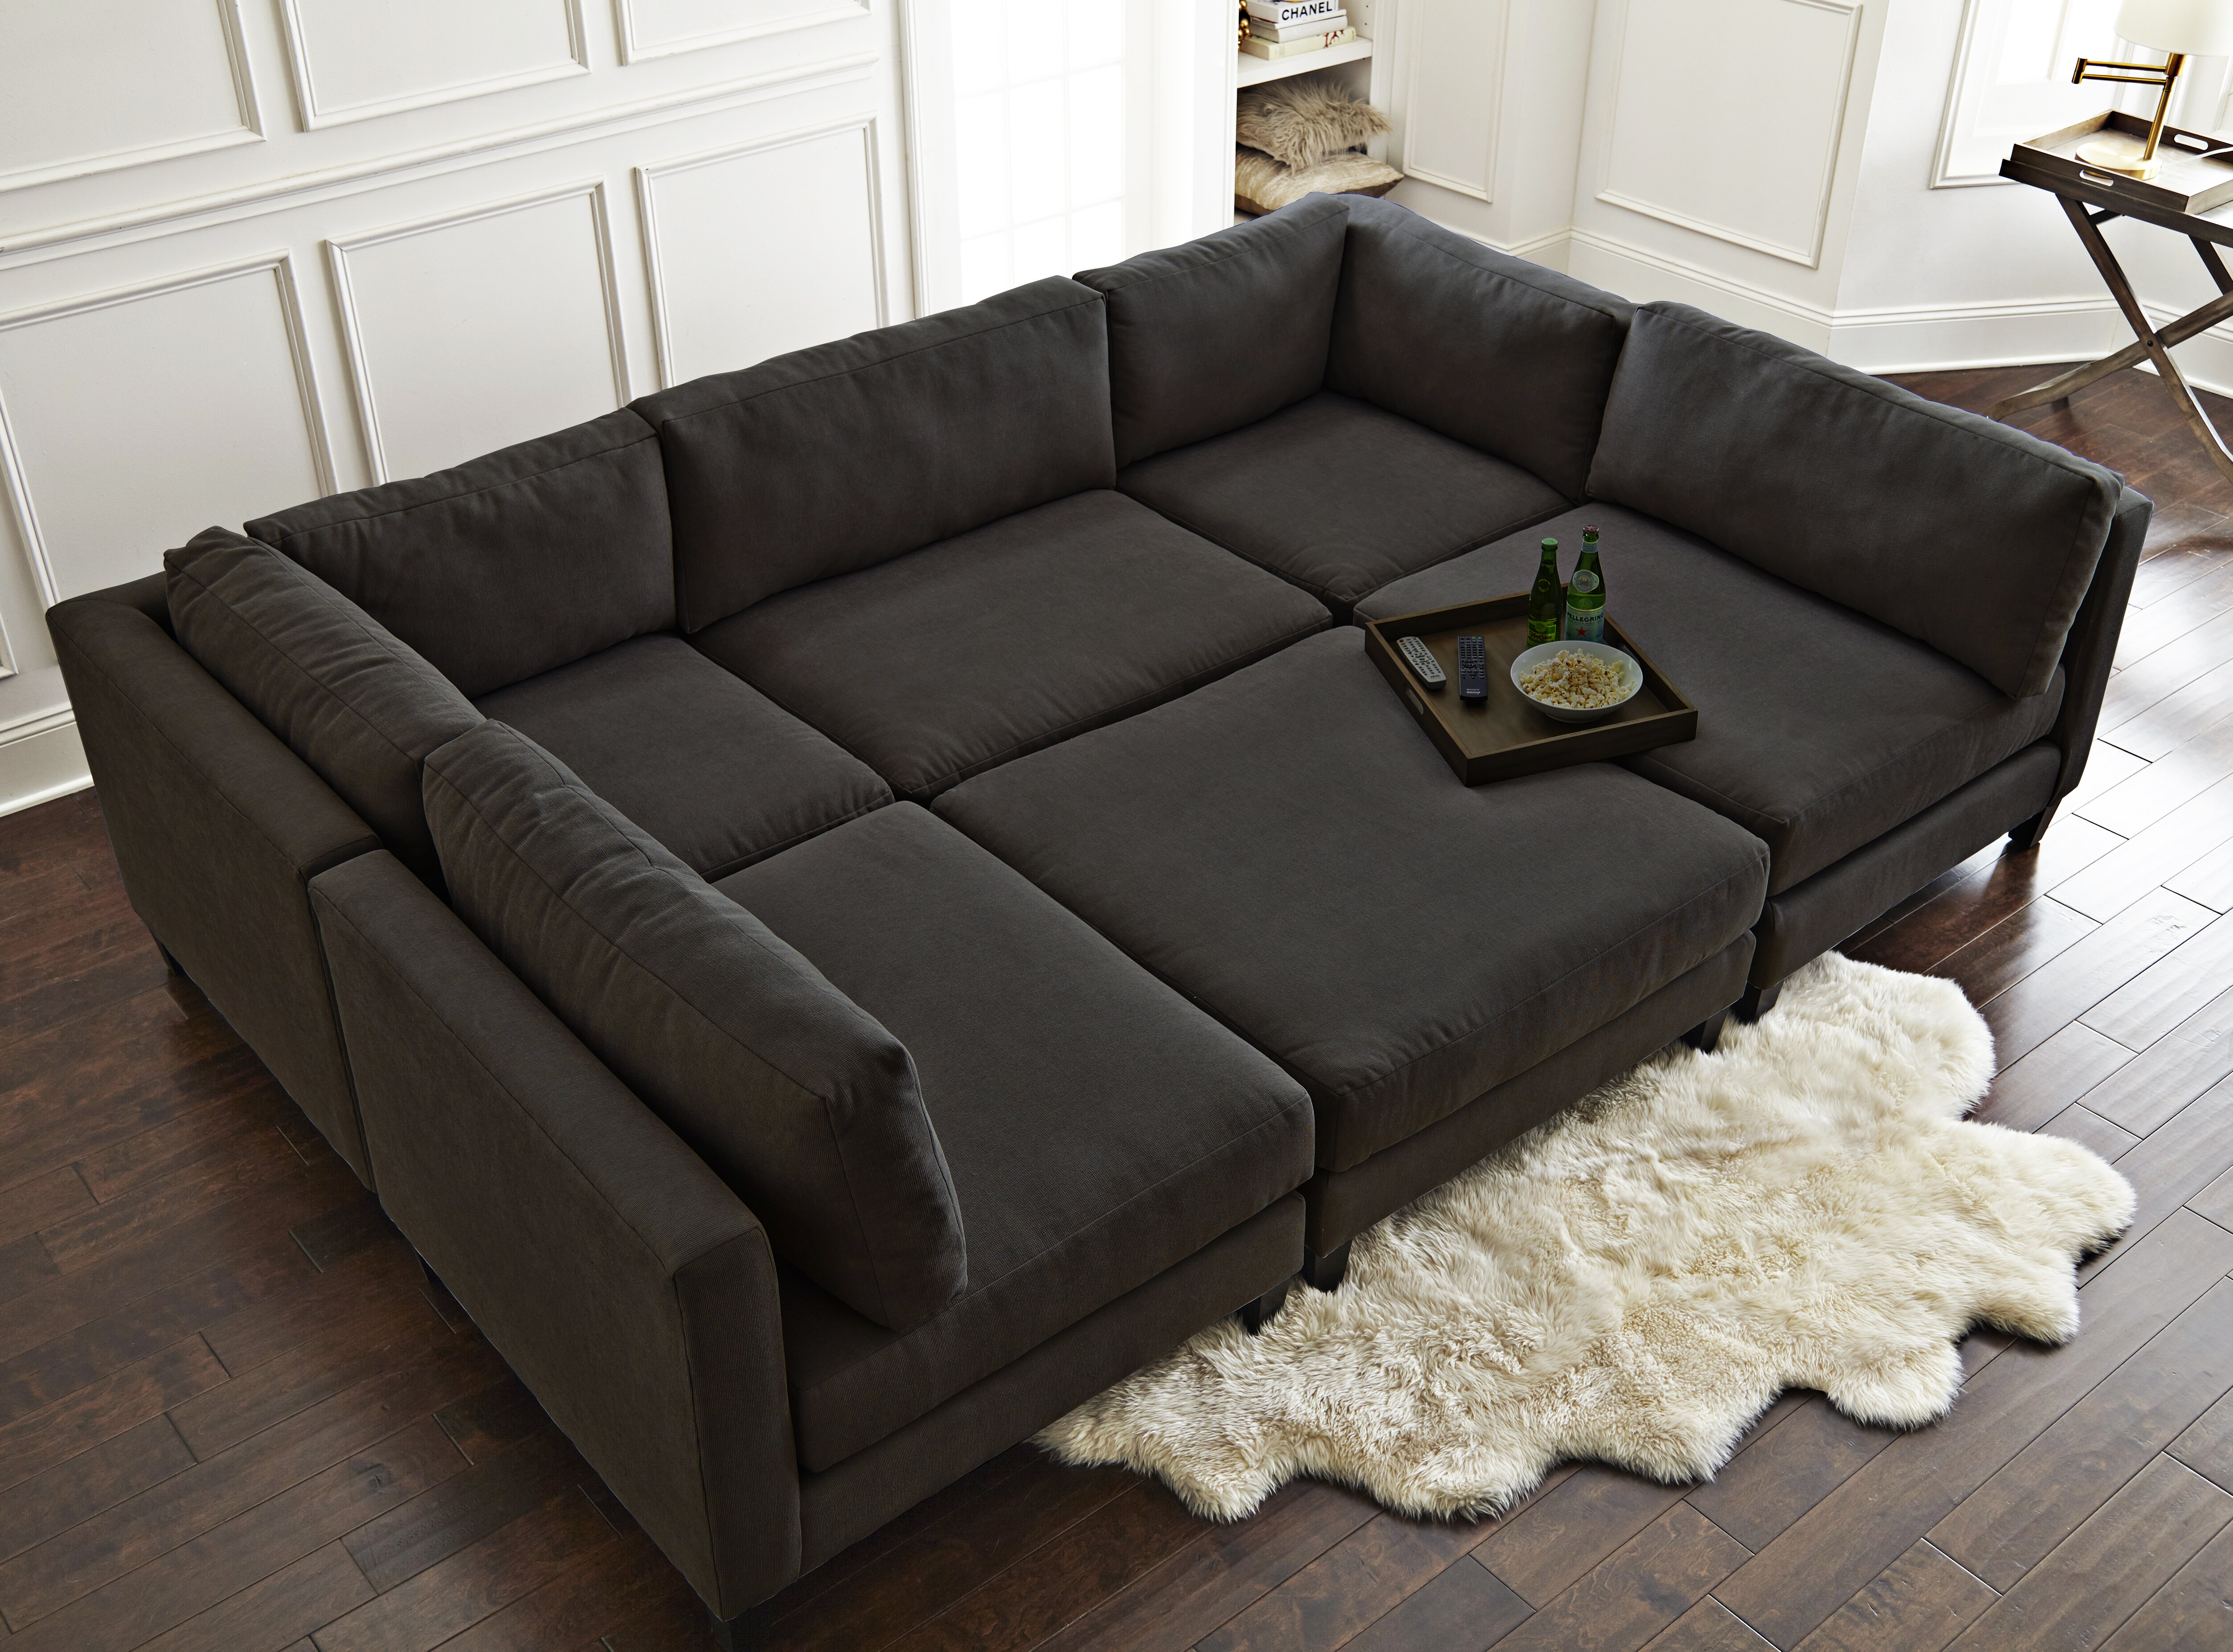 Home by Sean & Catherine Lowe Chelsea Sectional & Reviews ...